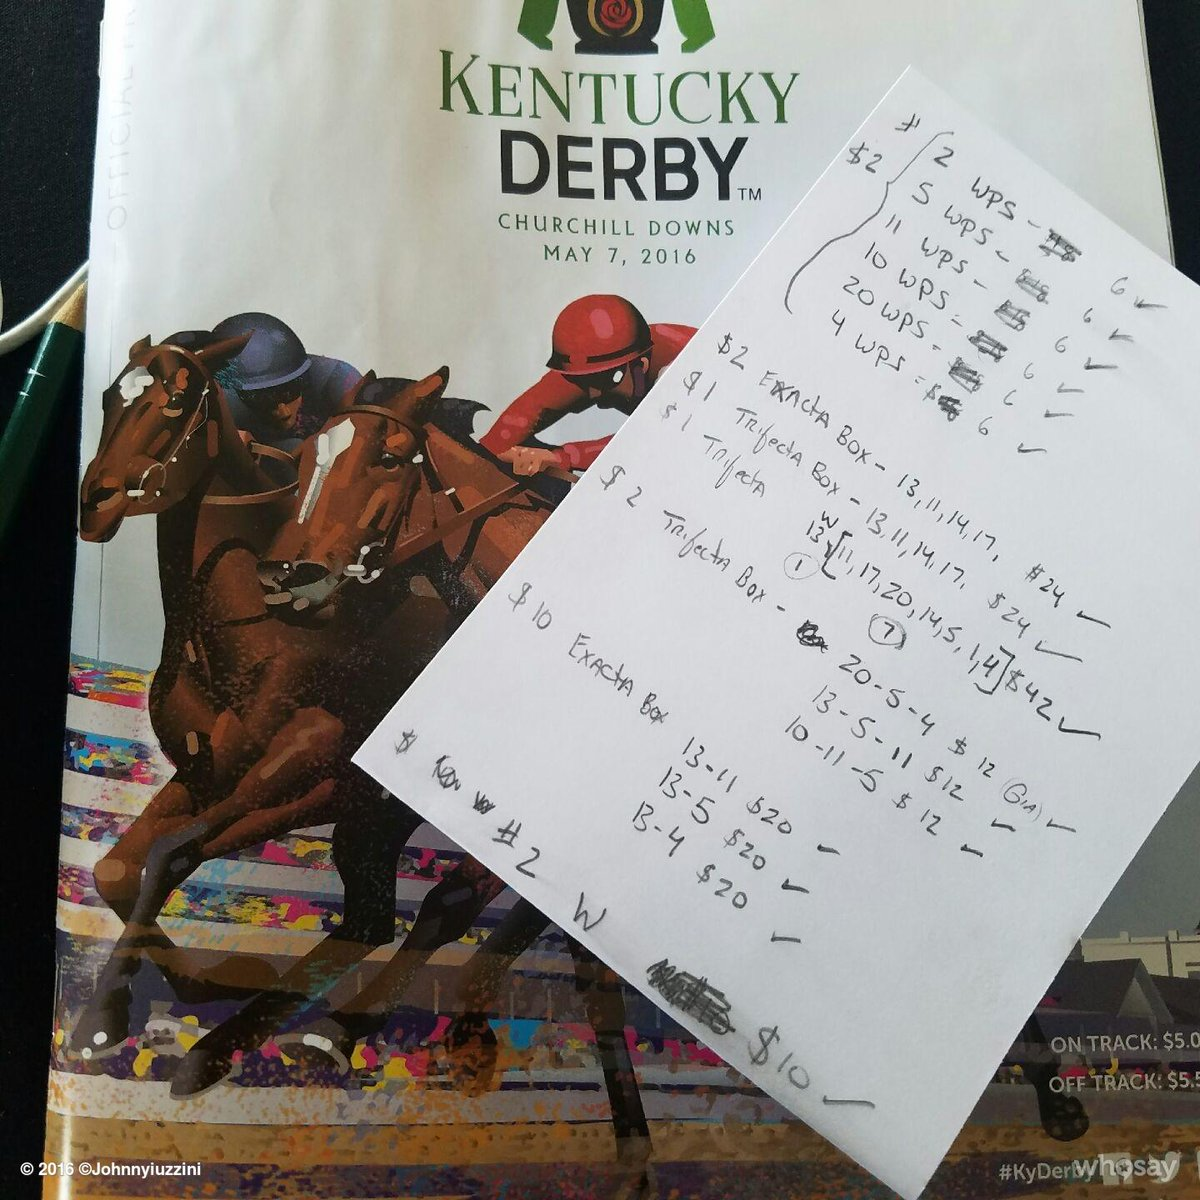 Our picks for the big race. Keep in mind I have no clue about horse racing. @kentuckyDerby #kyderby #tasteofderby https://t.co/5GgN5etdS8